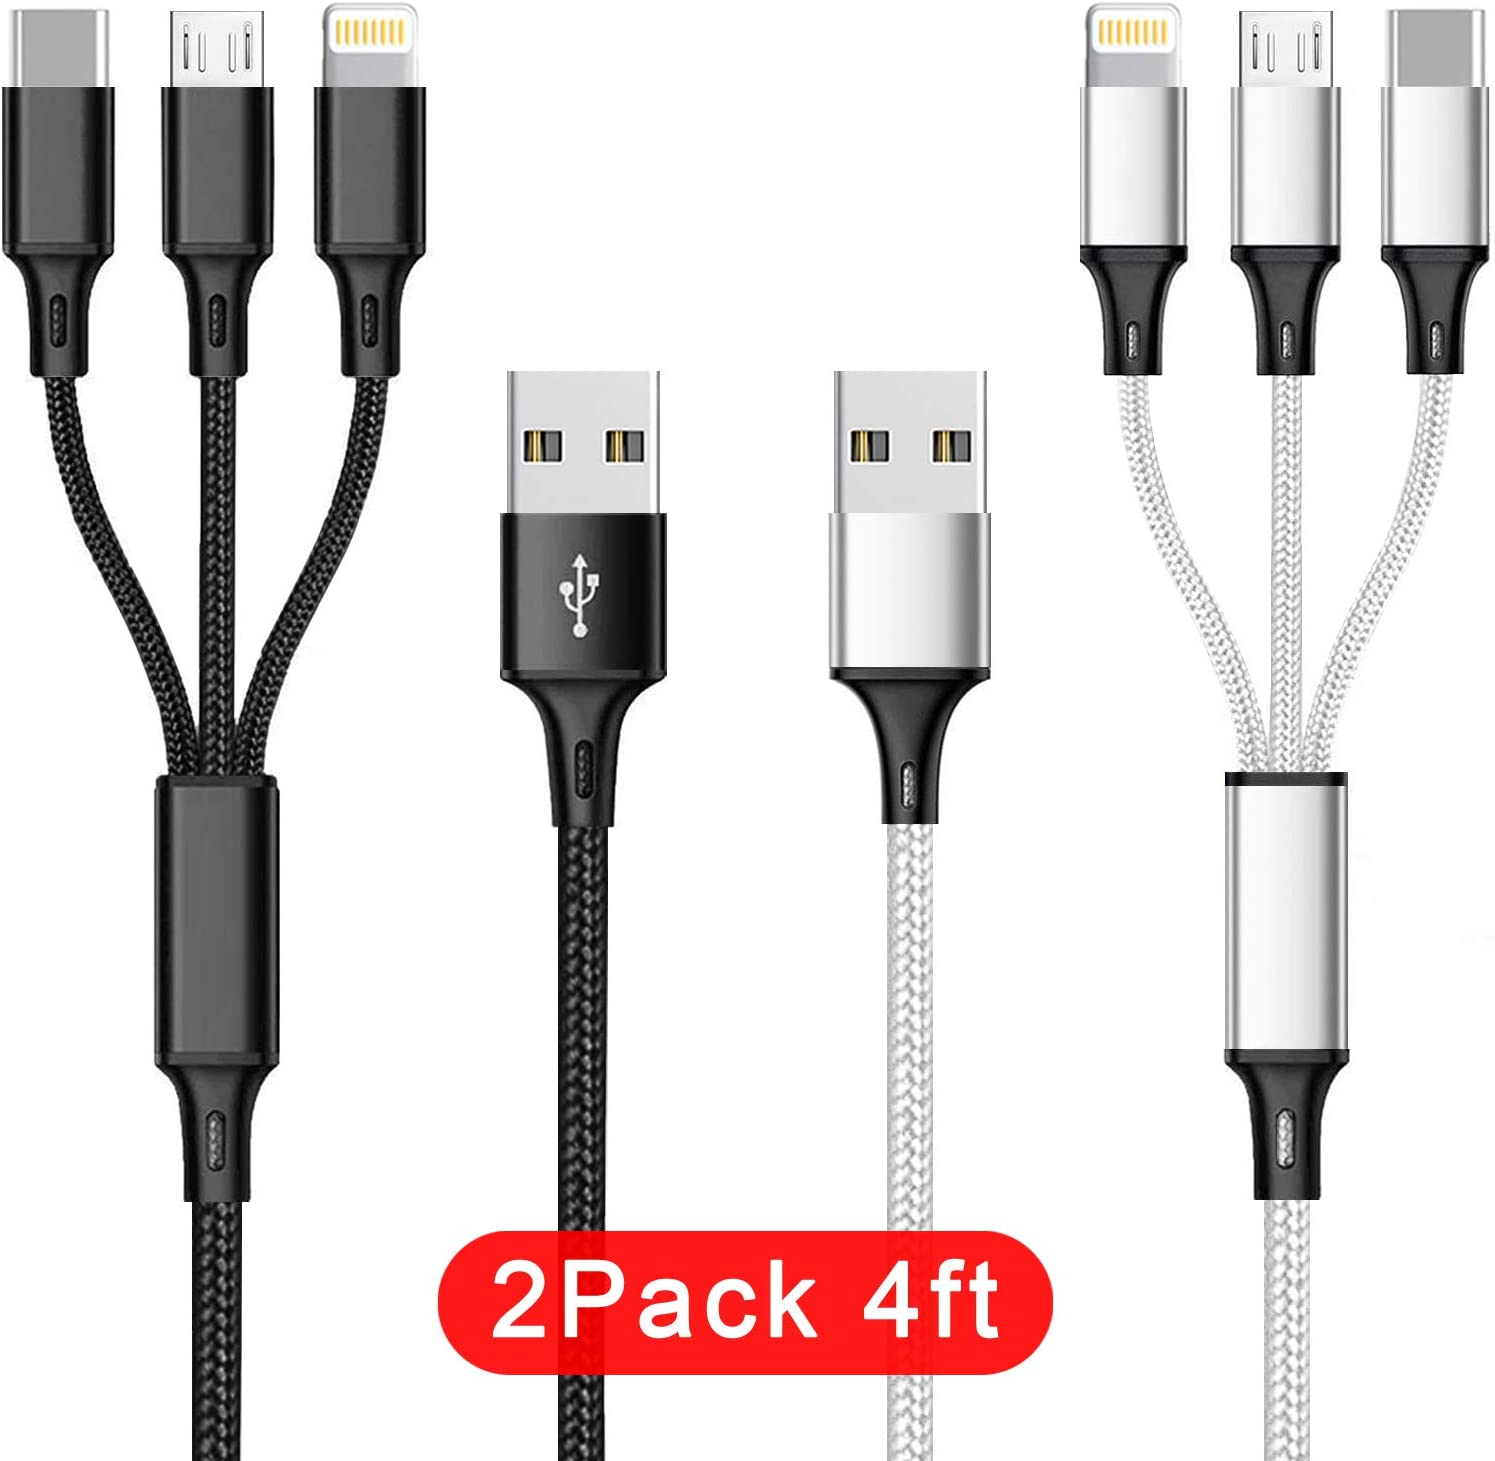 Free Amazon Promo Code 2020 for 2Pack Multi USB Charging Cable 3A